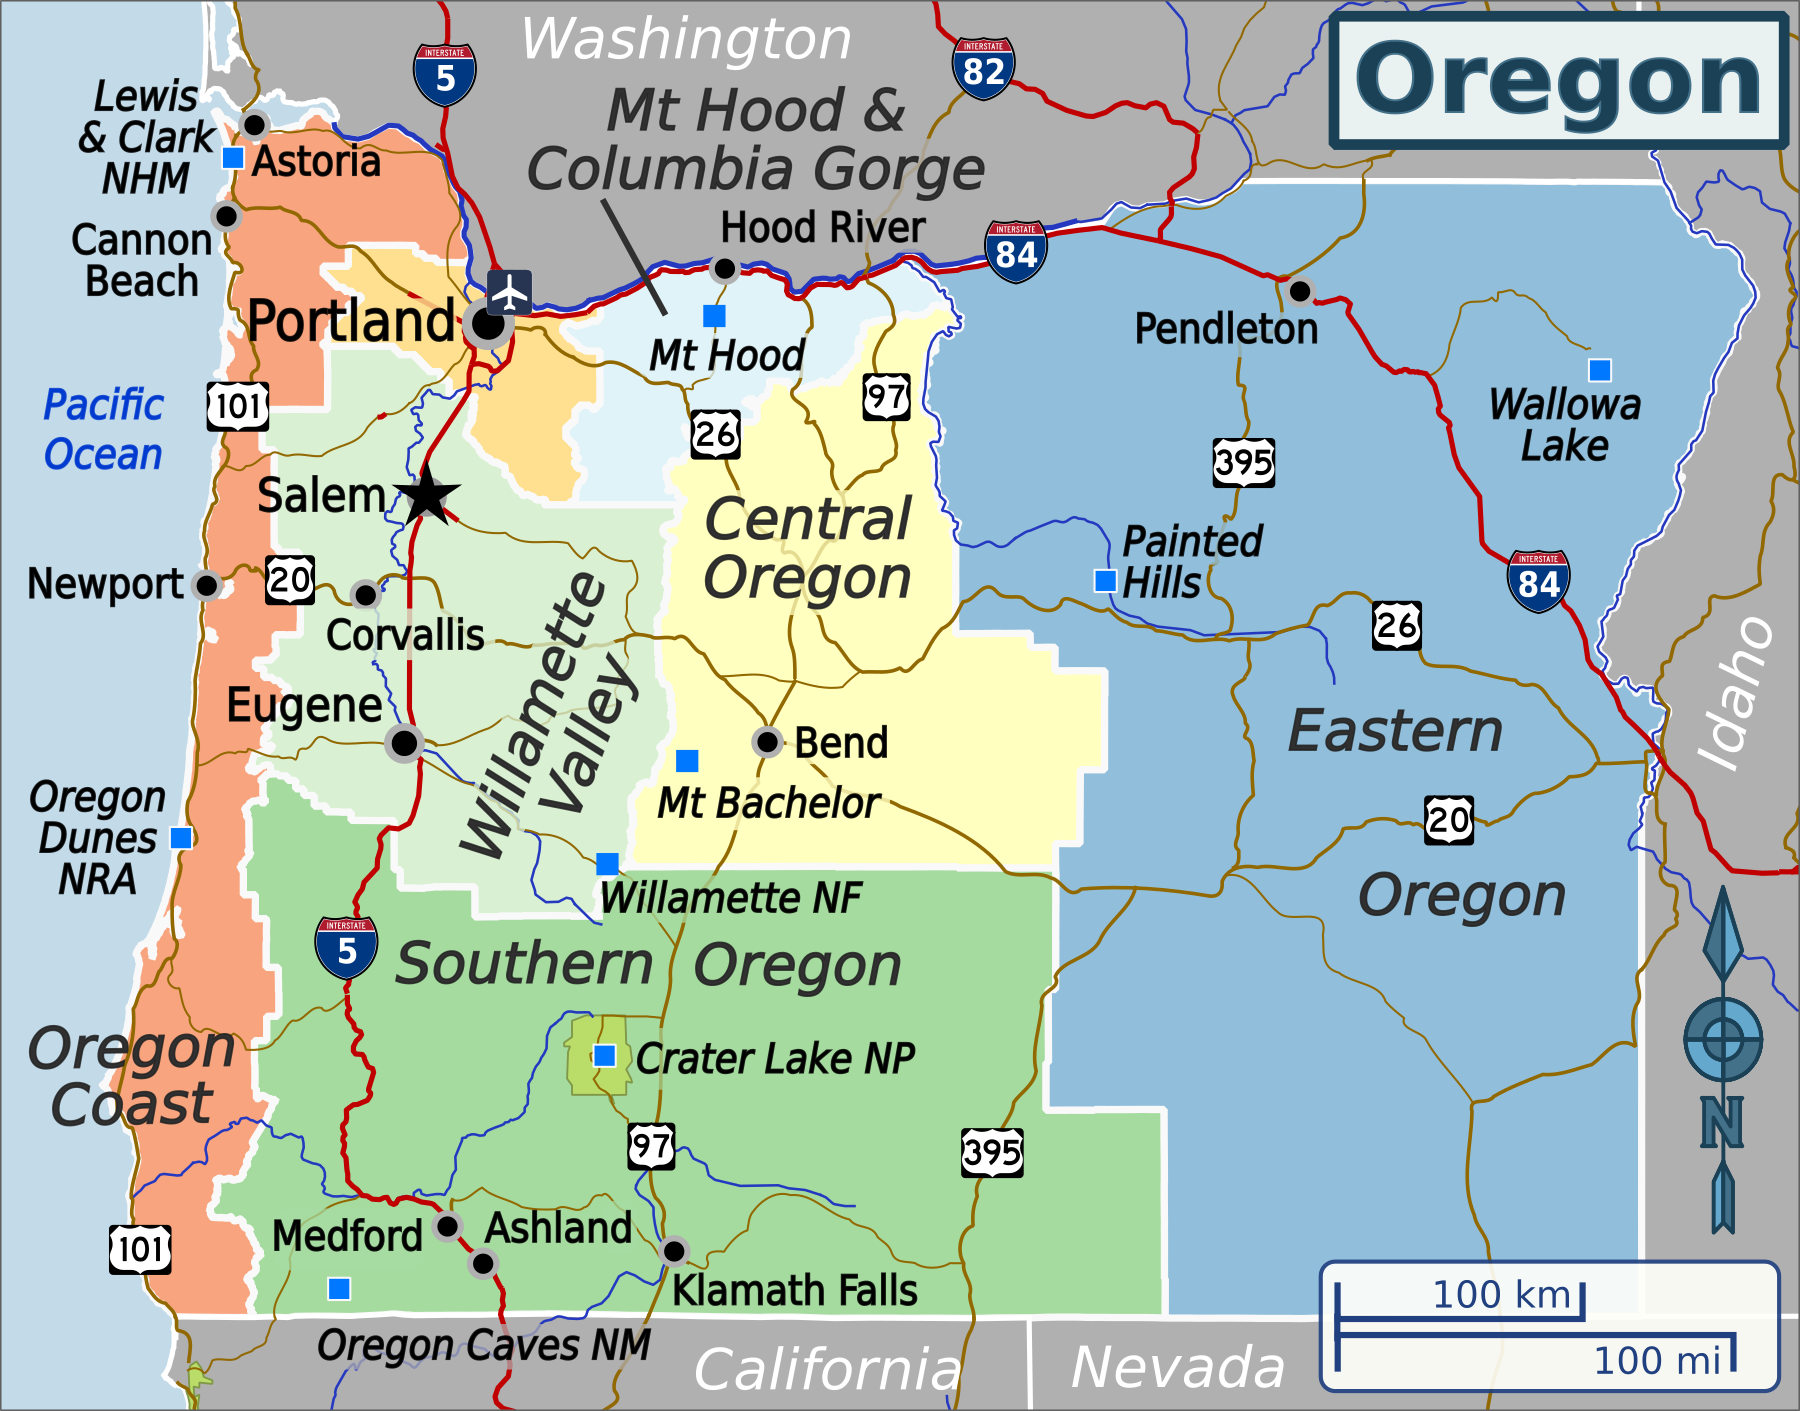 File:Oregon WV region map EN.png - Wikimedia Commons on central georgia map, central nj map, central washington map, central virginia map, grants pass map, arizona map, central ohio map, high desert map, central tx map, central ny map, central san diego map, oregon's map, central mountain time zone map, central eastern us map, eagle crest resort map, central iowa map, central michigan map, central u.s. map, central bend map, central oklahoma city map,